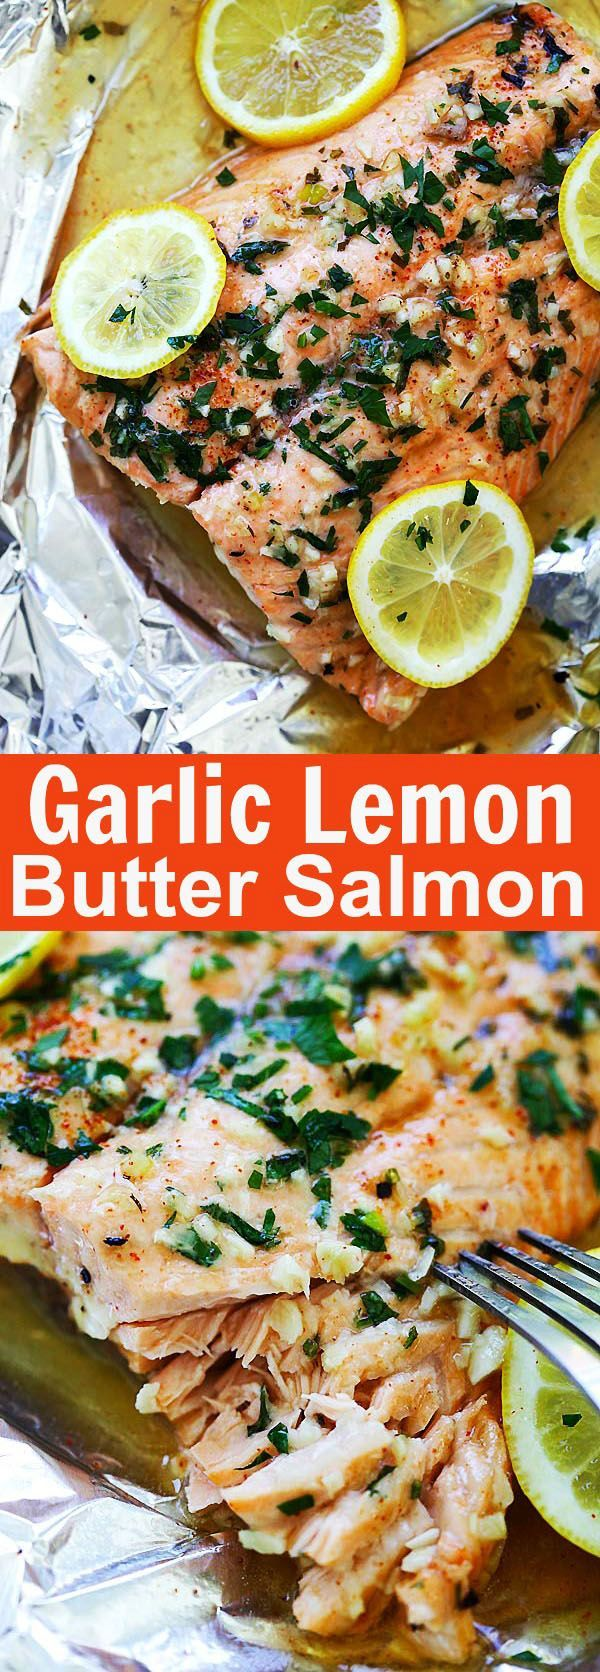 Garlic Lemon Butter Salmon | Easy Delicious Recipes